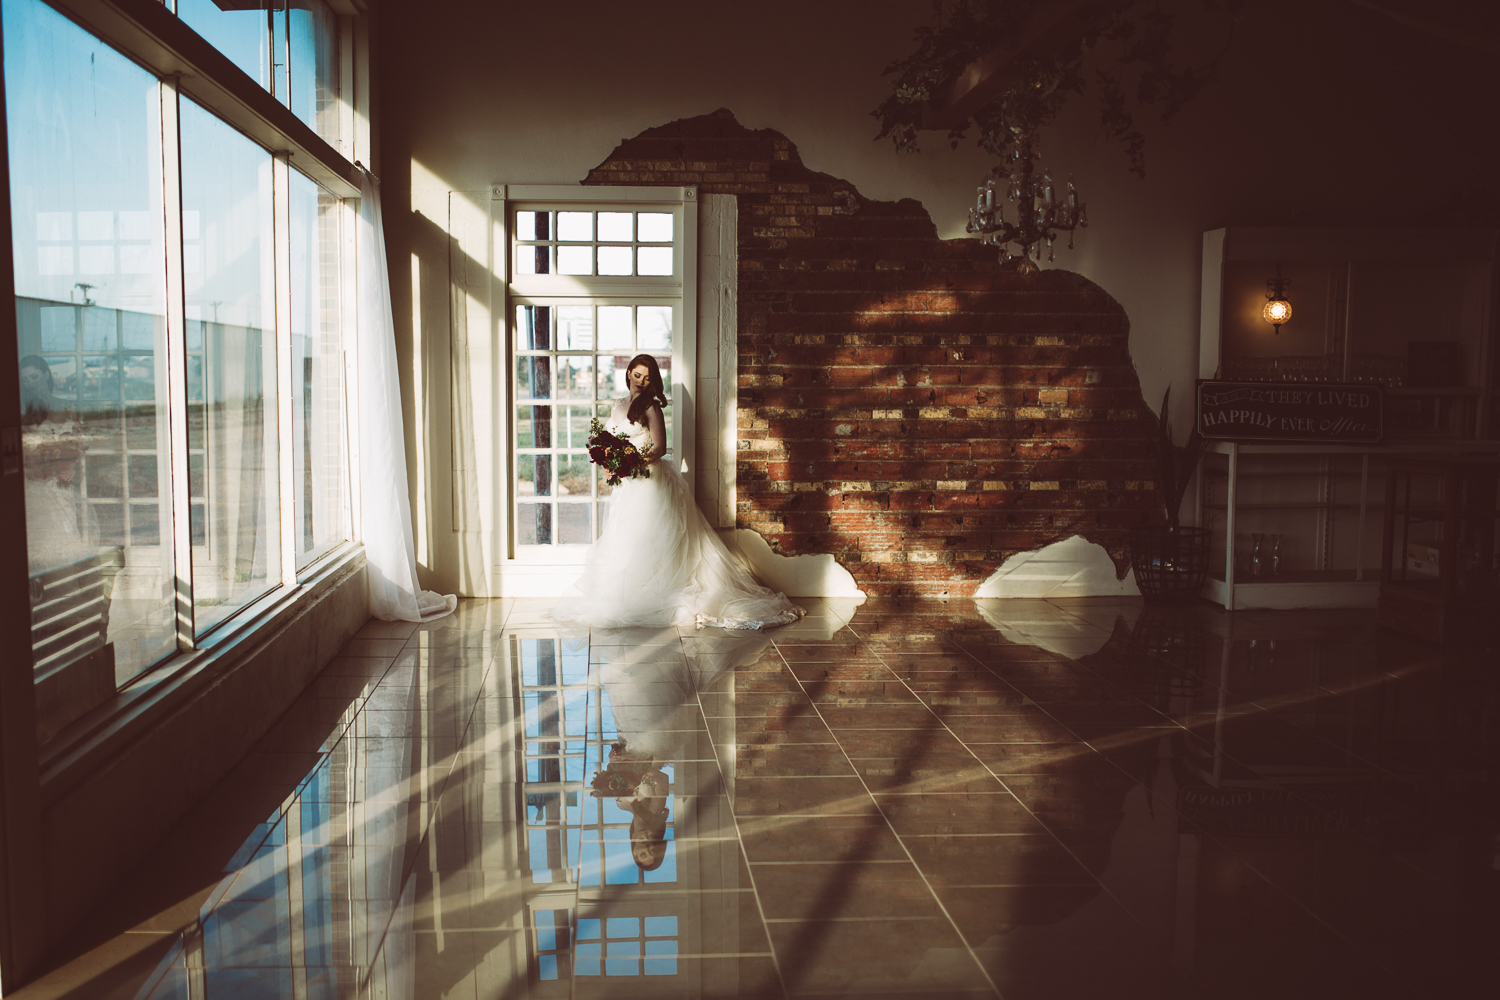 laura-beck-photography-best-lubbock-texas-couples-love-lifestyle-engagement-wedding-anniversary-portraits-9.jpg